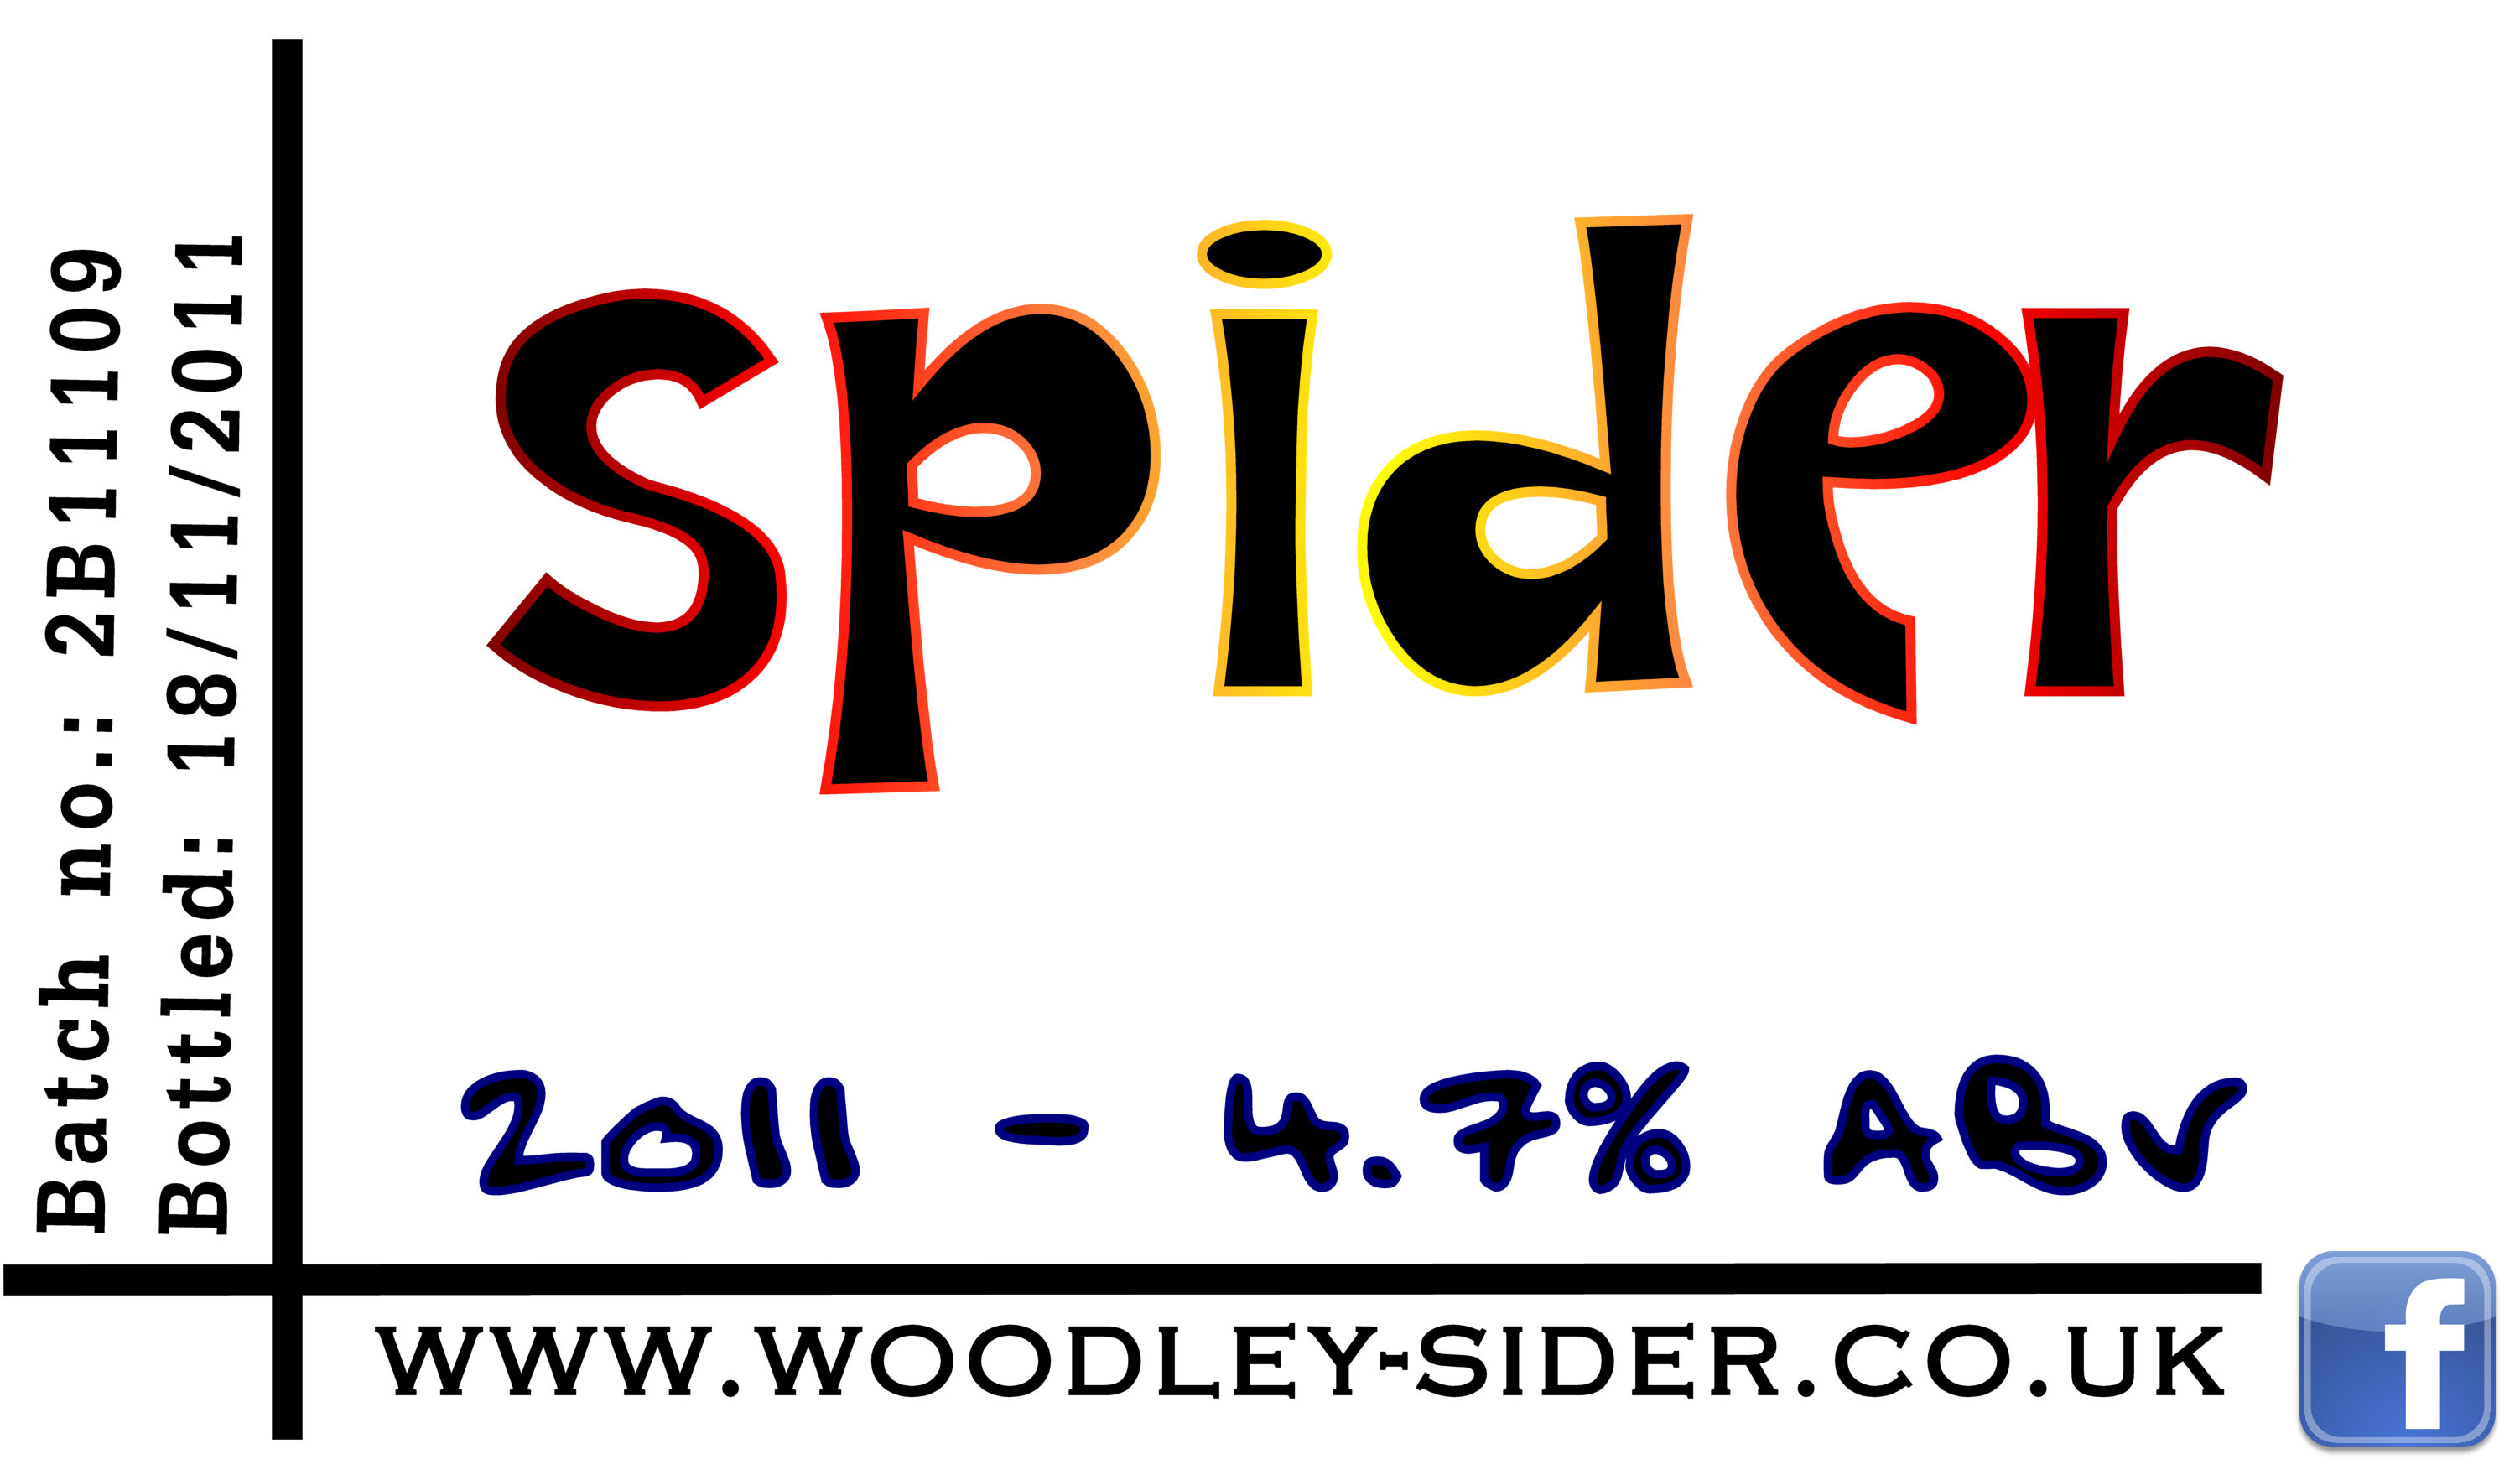 2011 Box Label - Spider.jpg